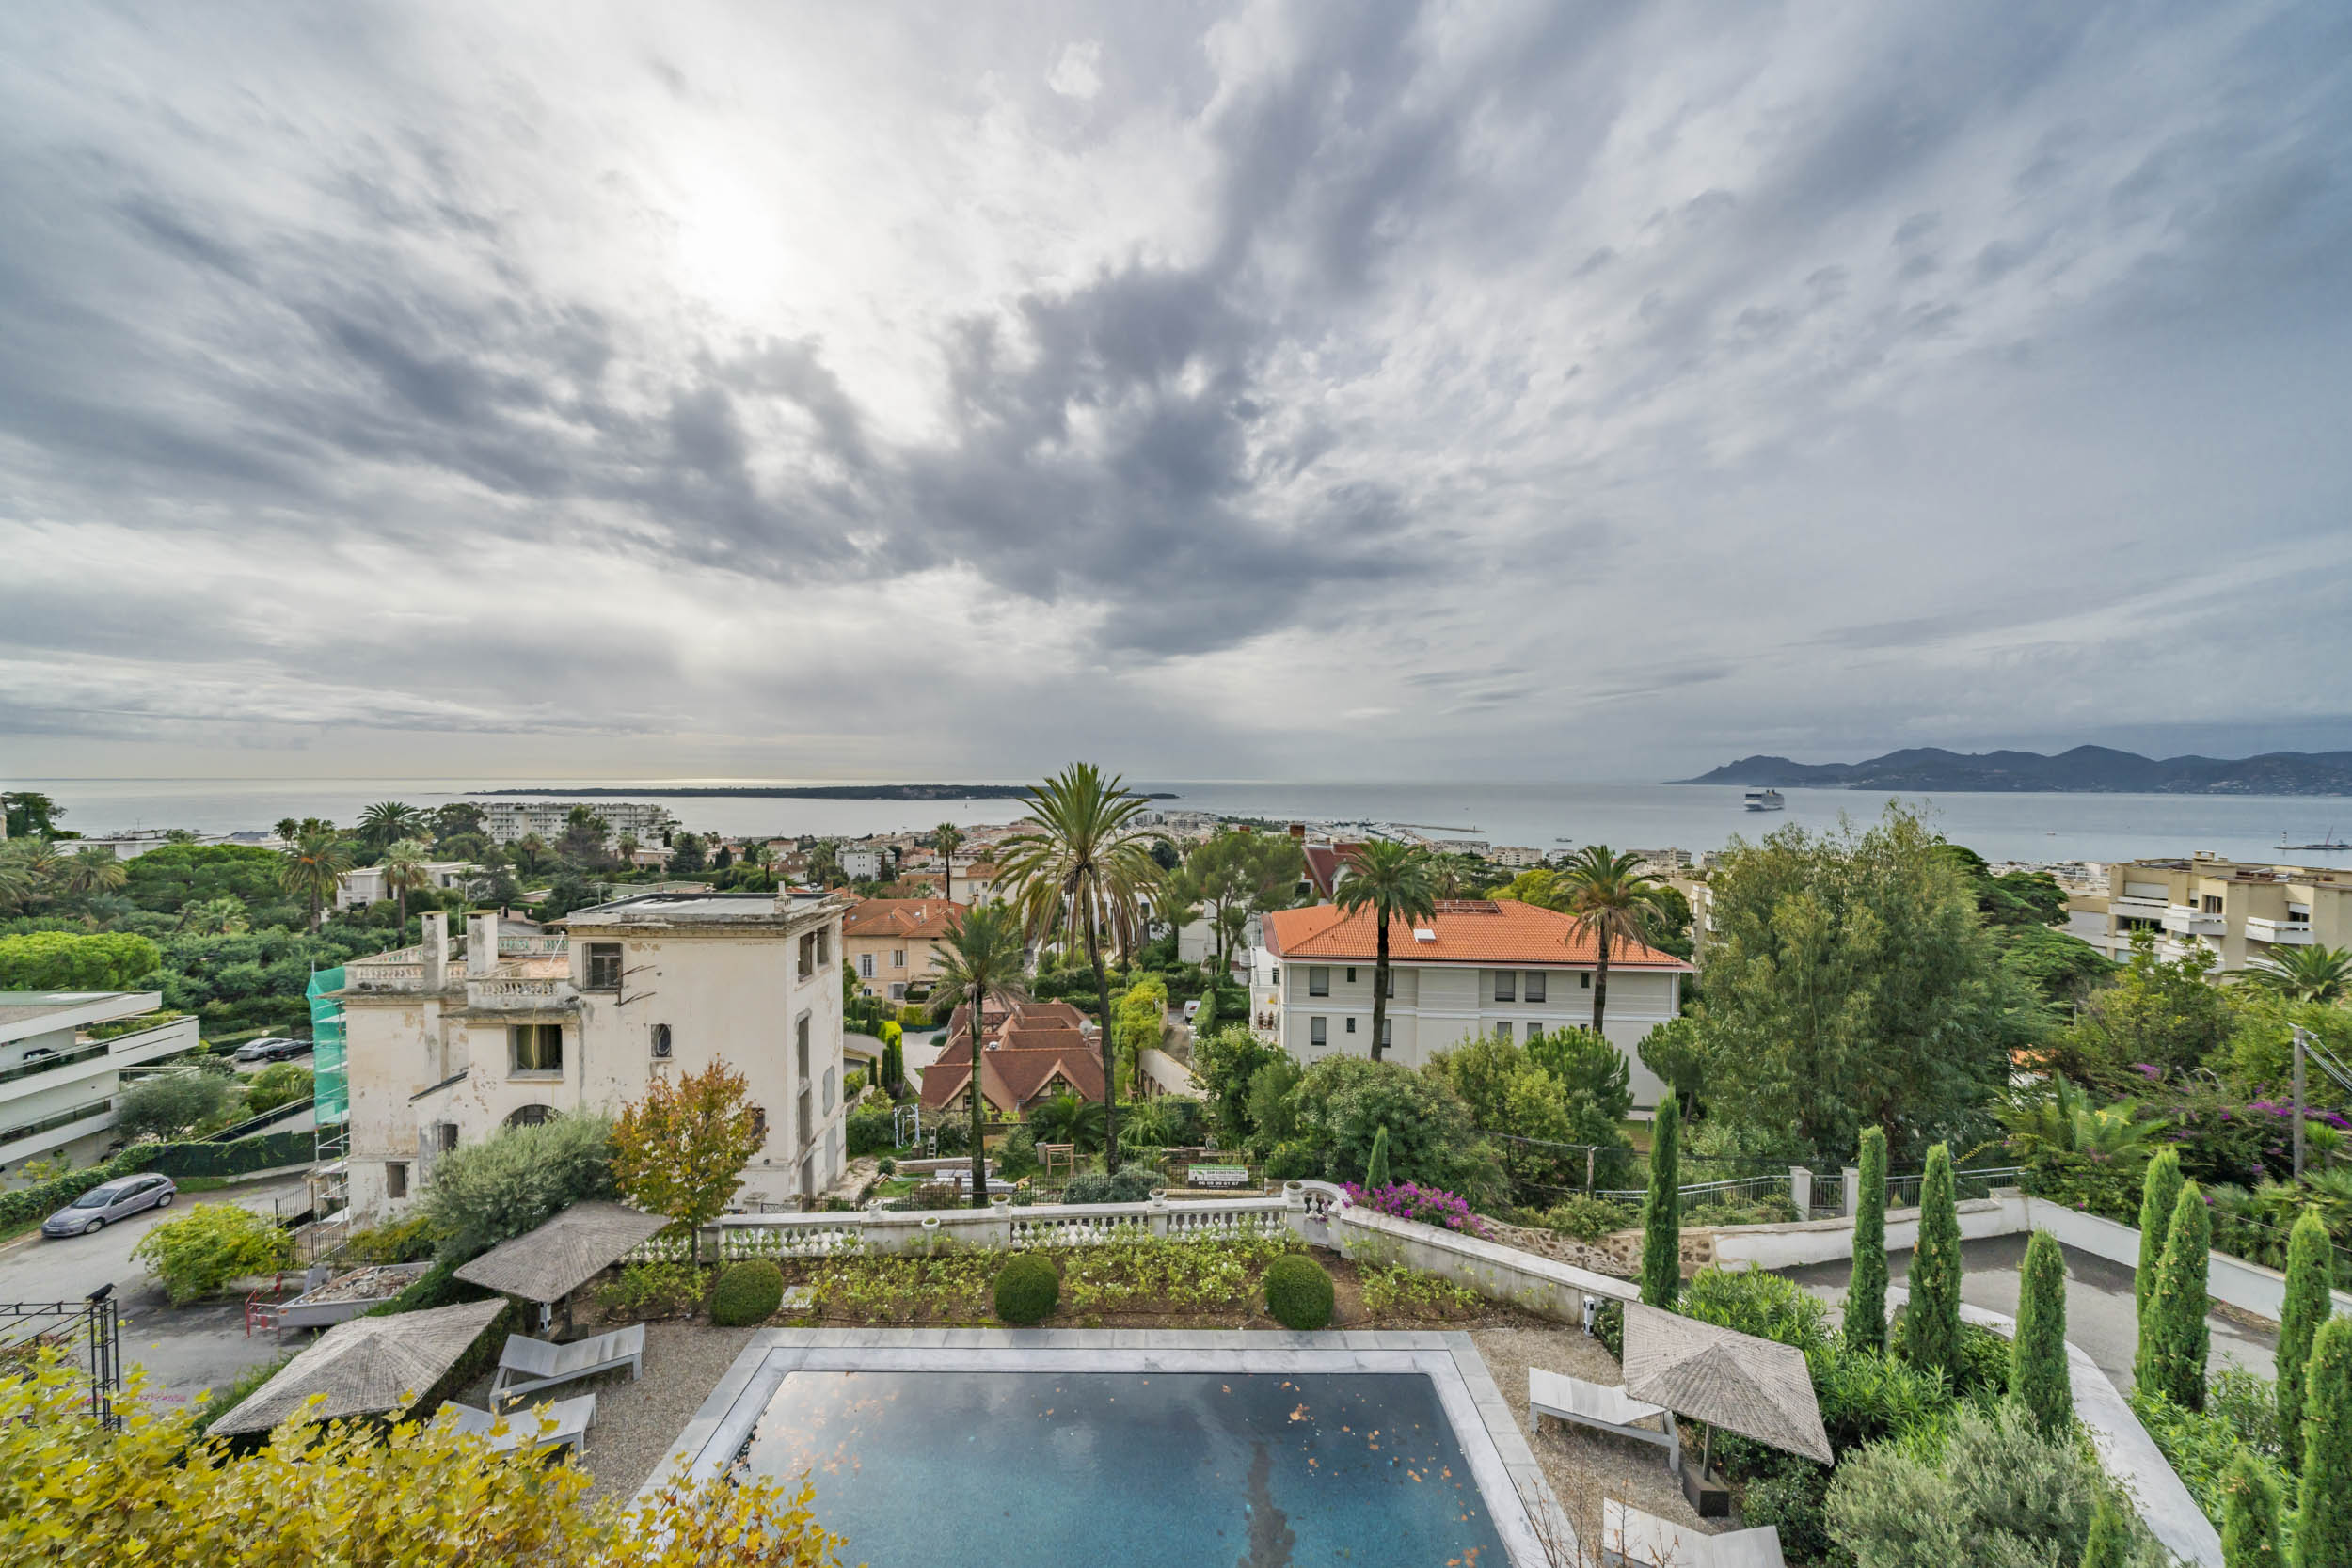 Estee Lauders former villa, 6 bedrooms located in the centre of Cannes only a short walk to the beach